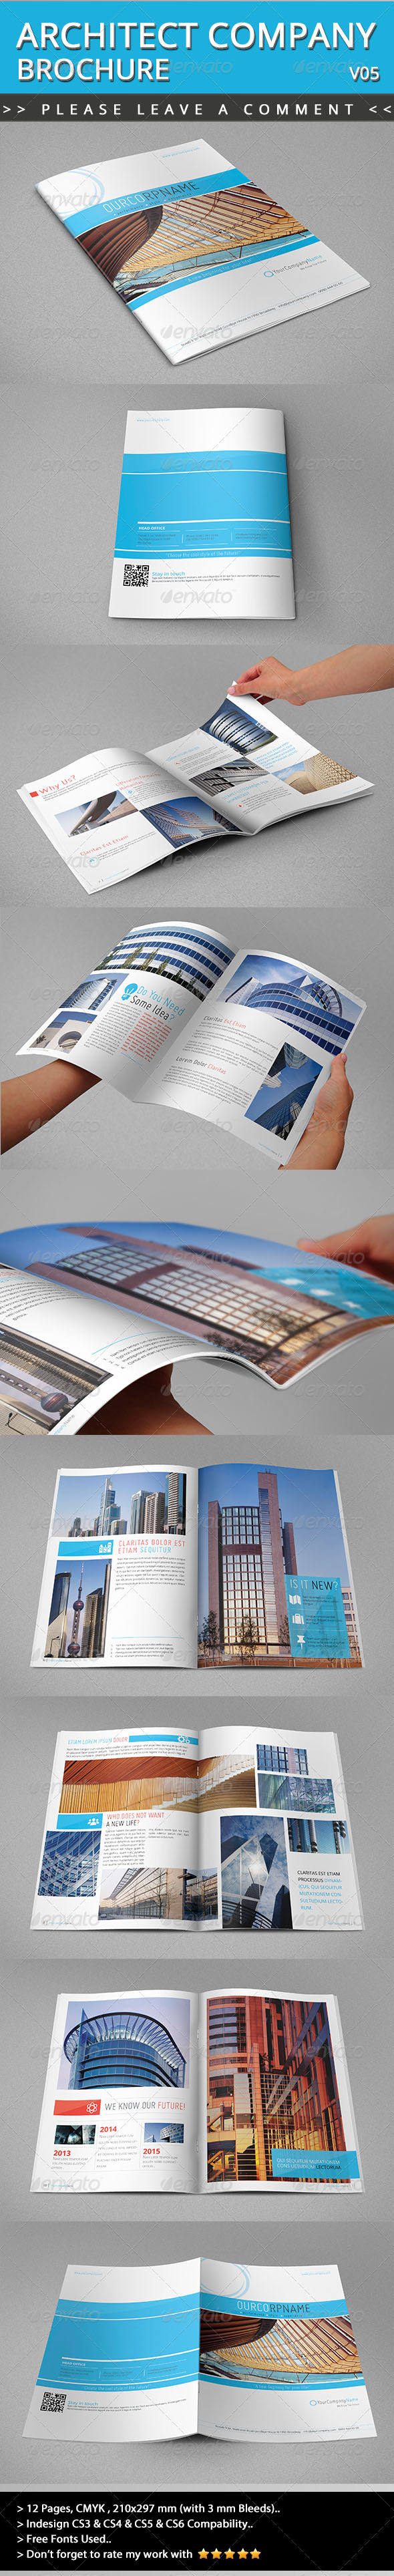 Architecture Brochure V05 - Corporate Brochures